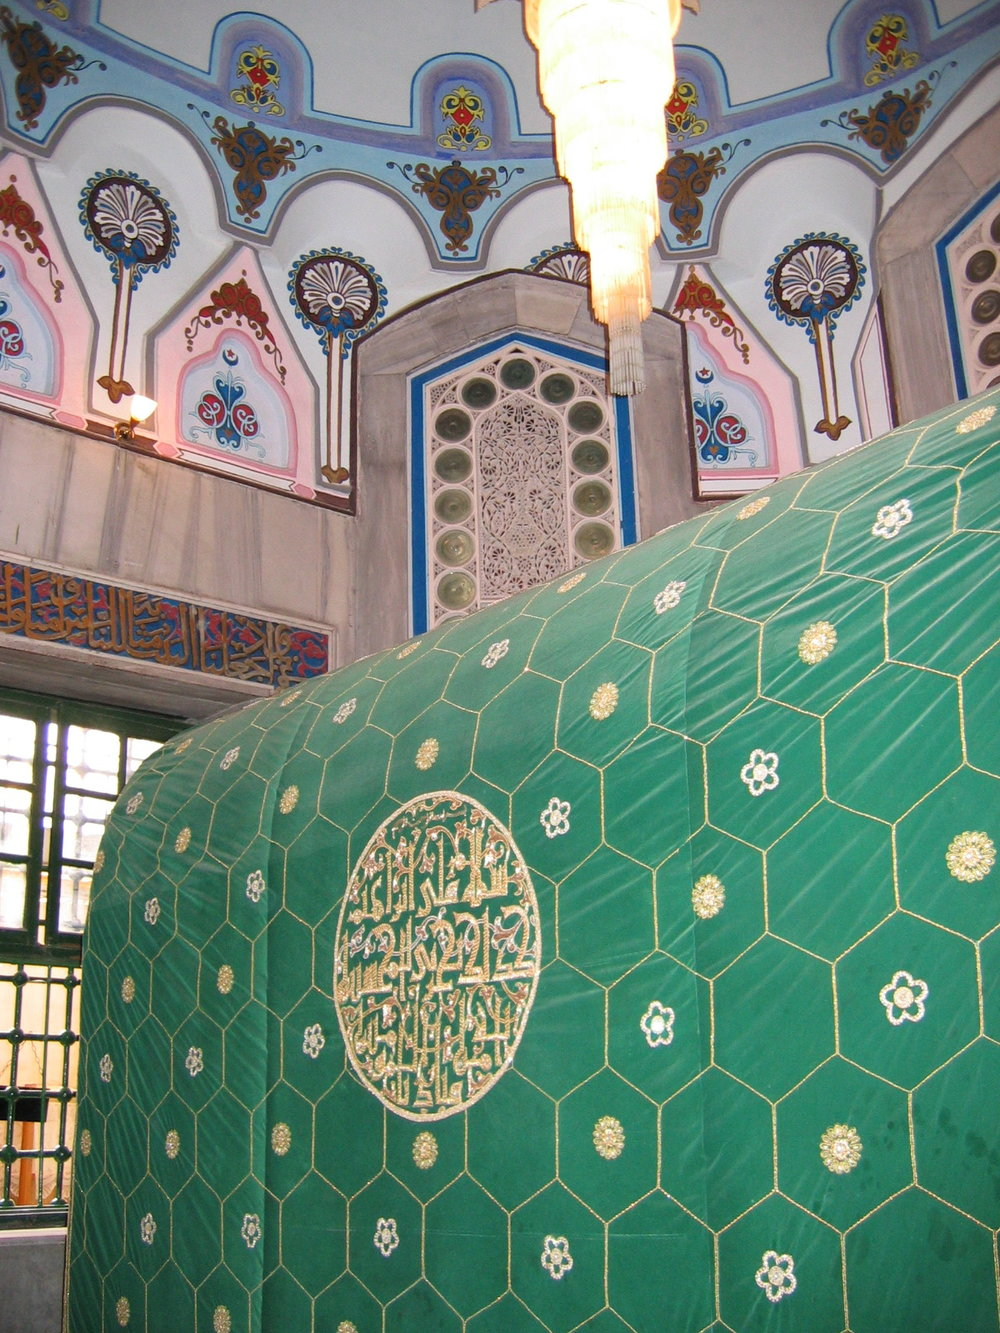 The Tomb of Abraham above the Cave of the Patriarchs, the Machpelah, where tradition says Abraham and Sarah were buried. – Photo: Wikimedia, Eric Stoltz, Cc.2.5